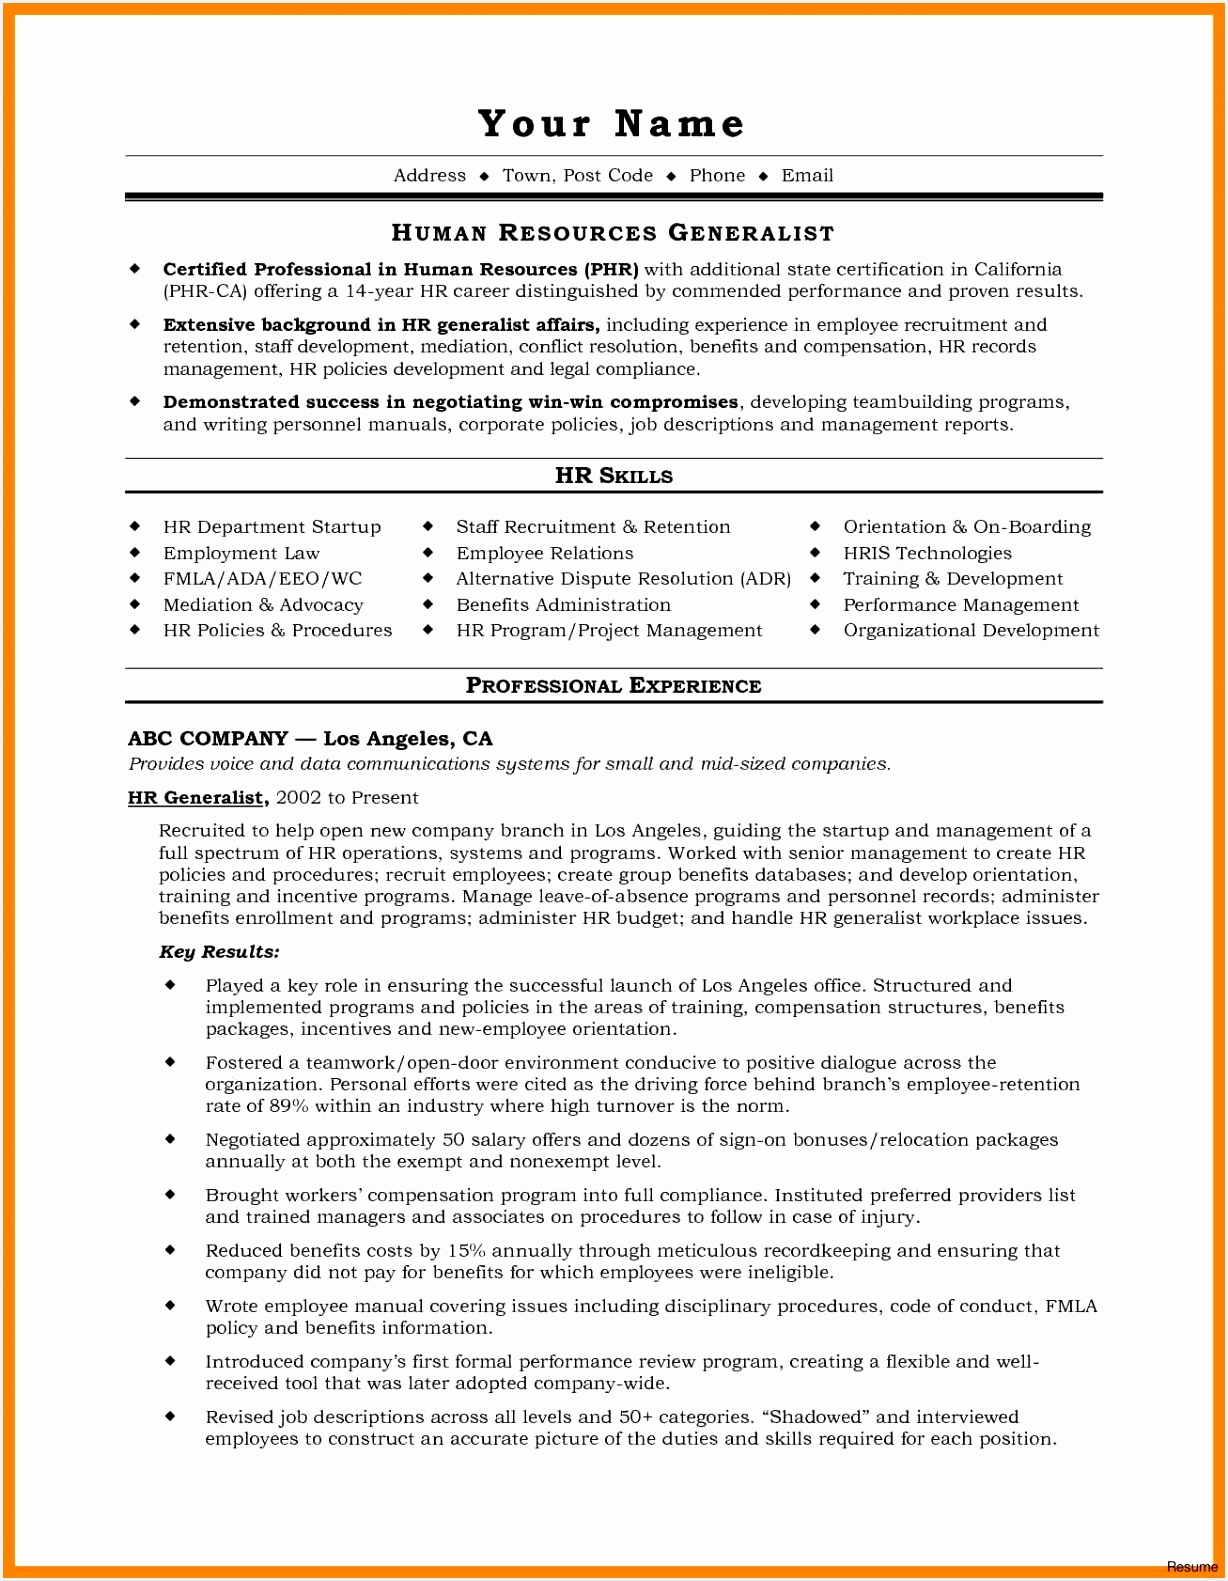 Property Manager Resume Objective Awesome Property Management Resume Template Fresh Email Marketing Resume Property Manager 15811228dsLcl